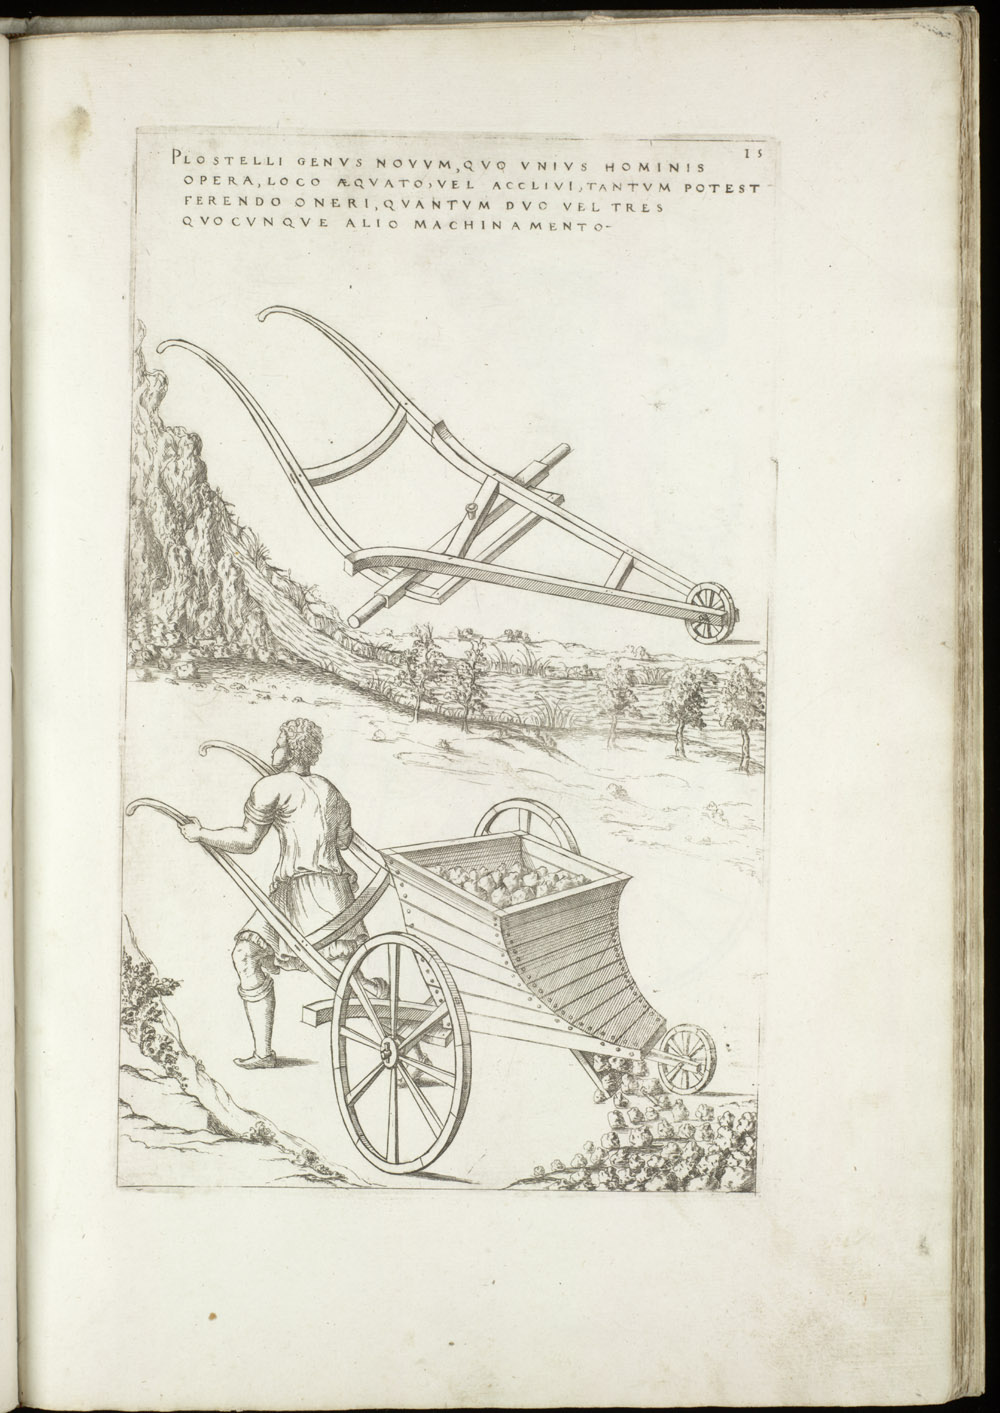 Plate 15 [Handcart],  Image number:SIL4-2-63a